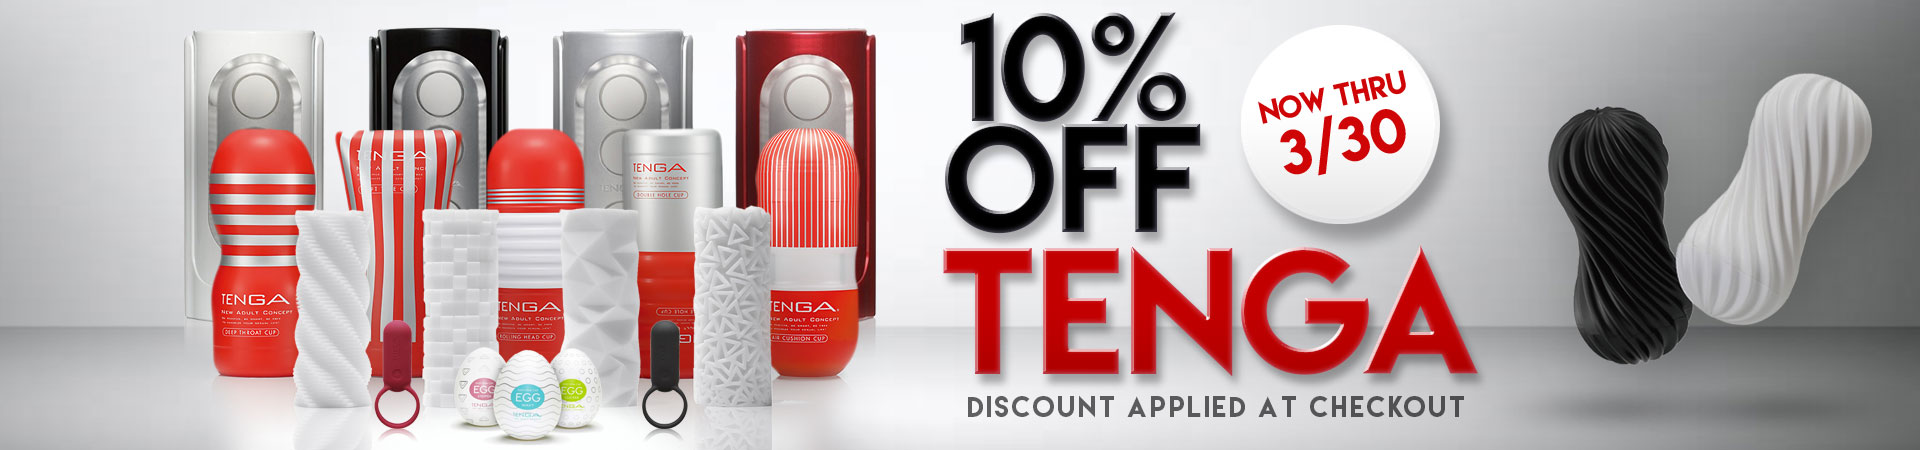 10% Off Tenga - Now Thru 3/30 - Discount Applied At Checkout